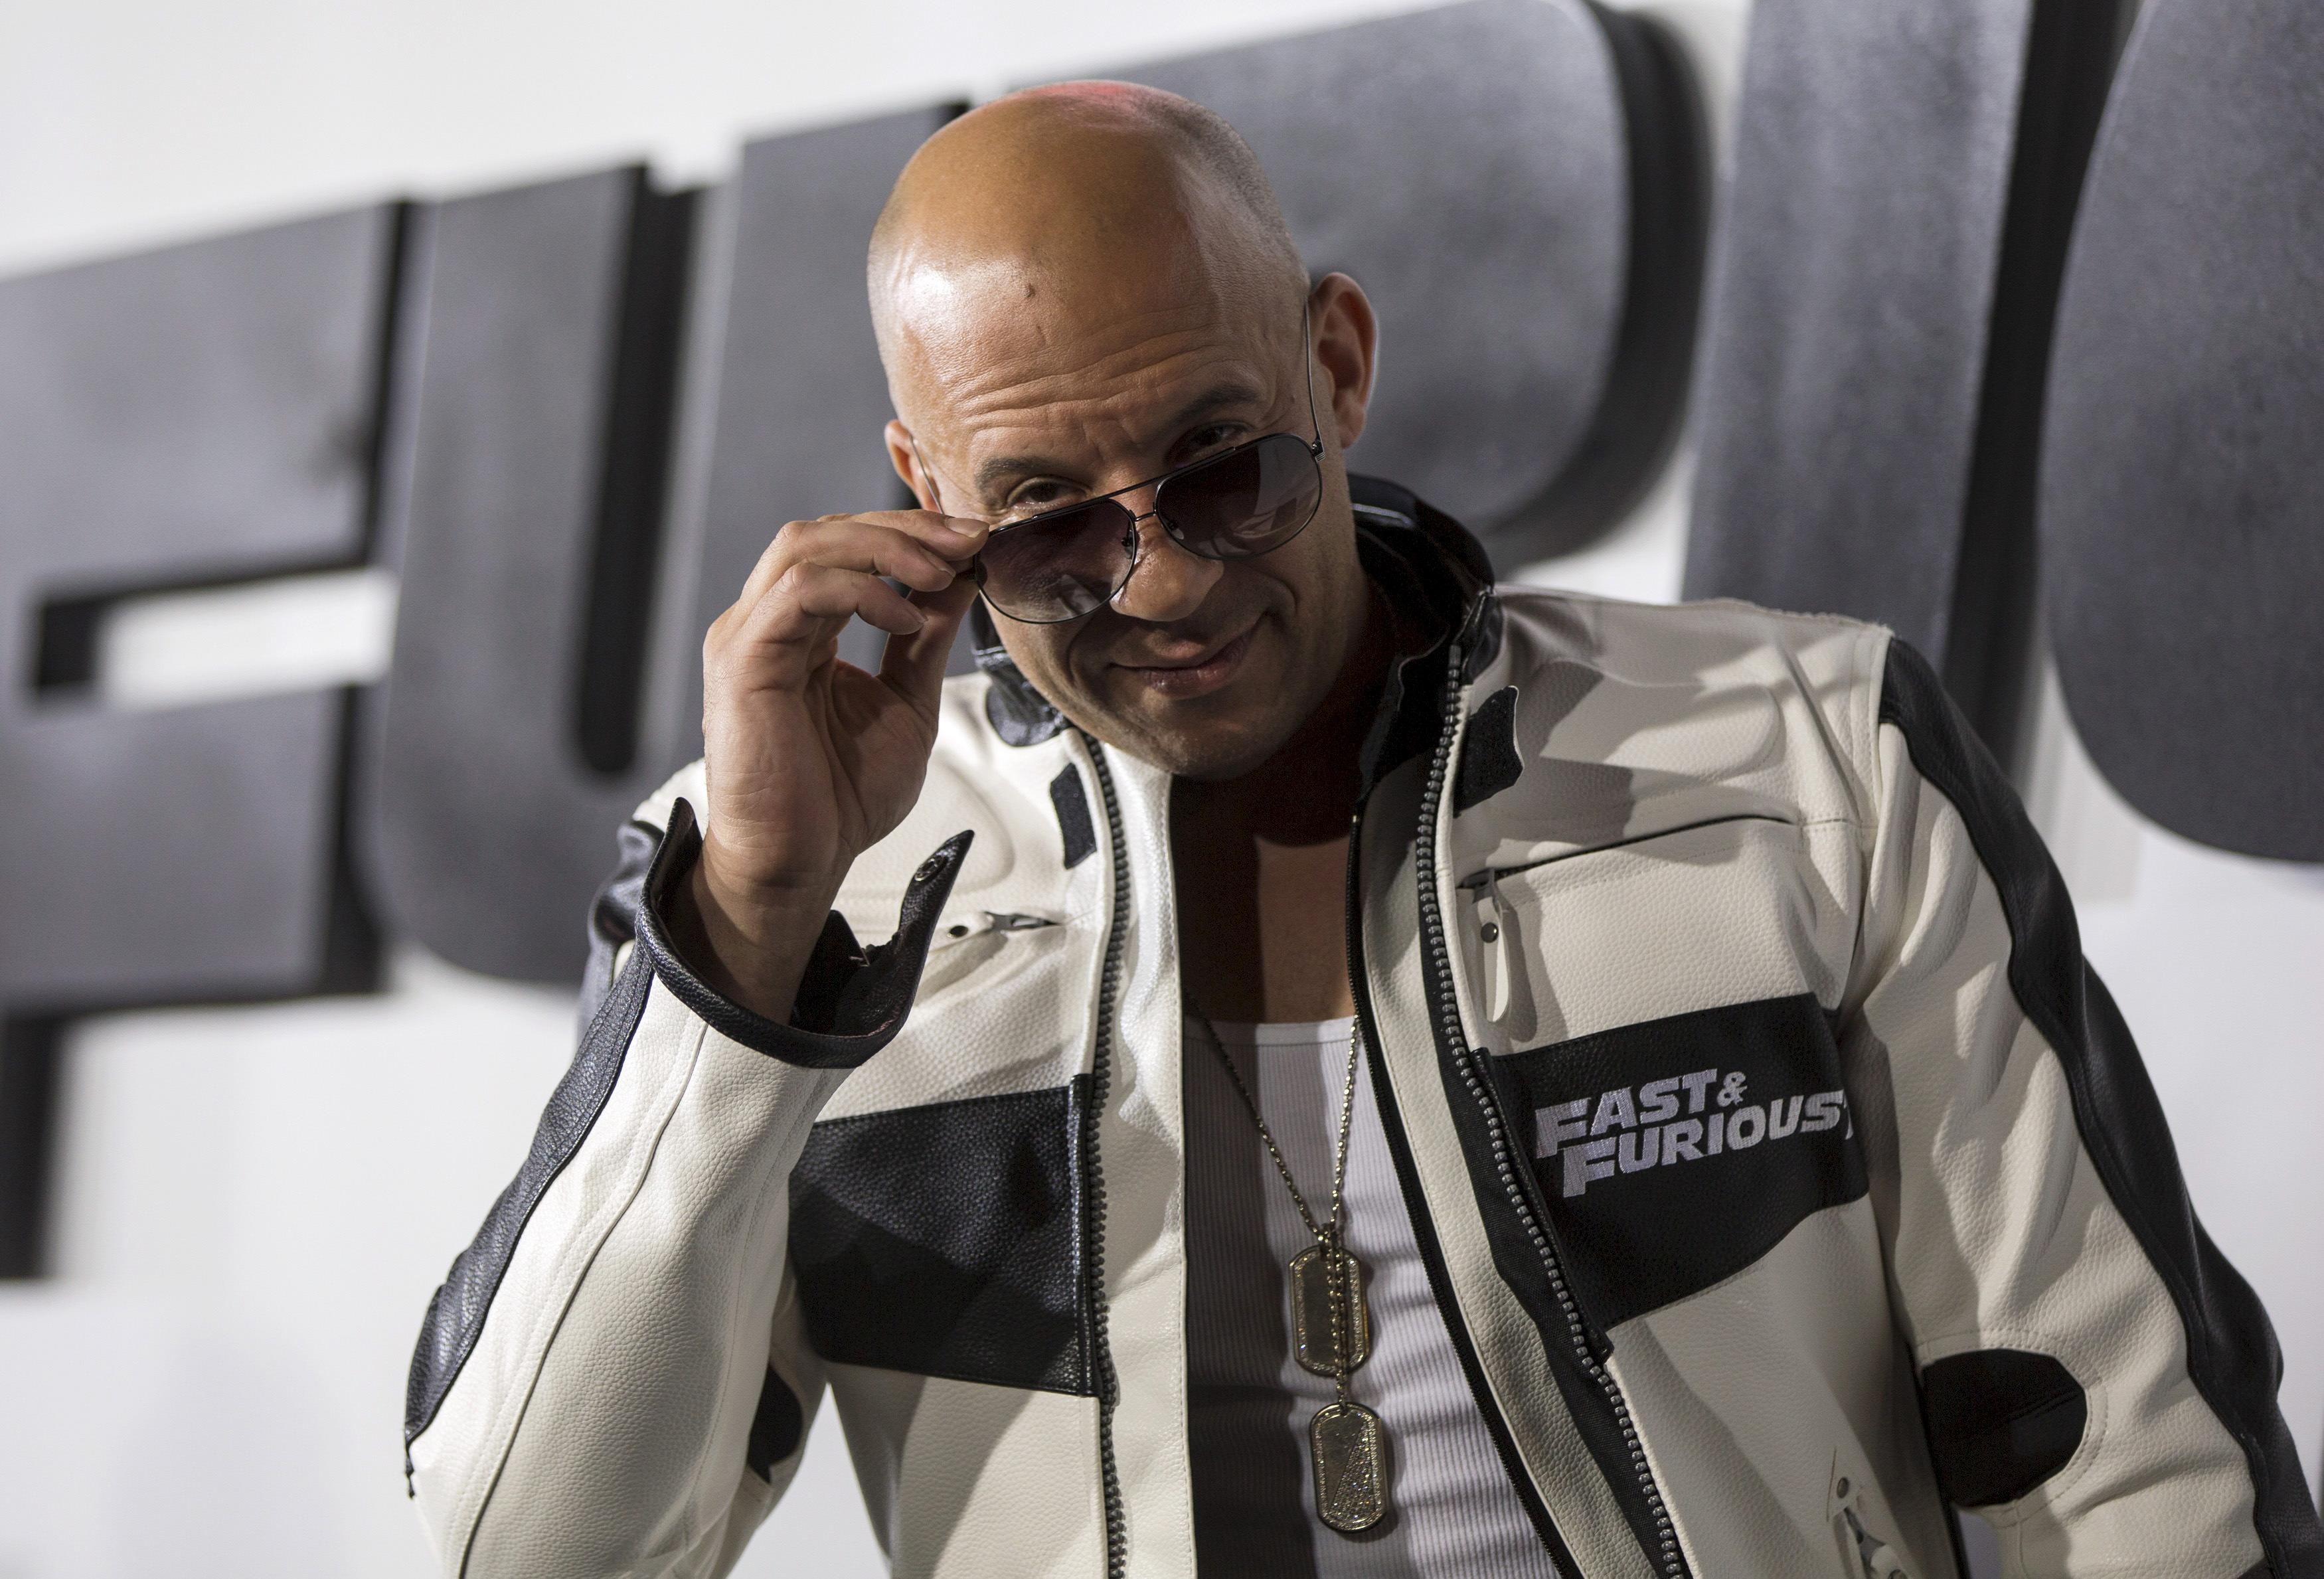 China Box Office: 'Furious 7′ Takes Record and Second Victory Lap